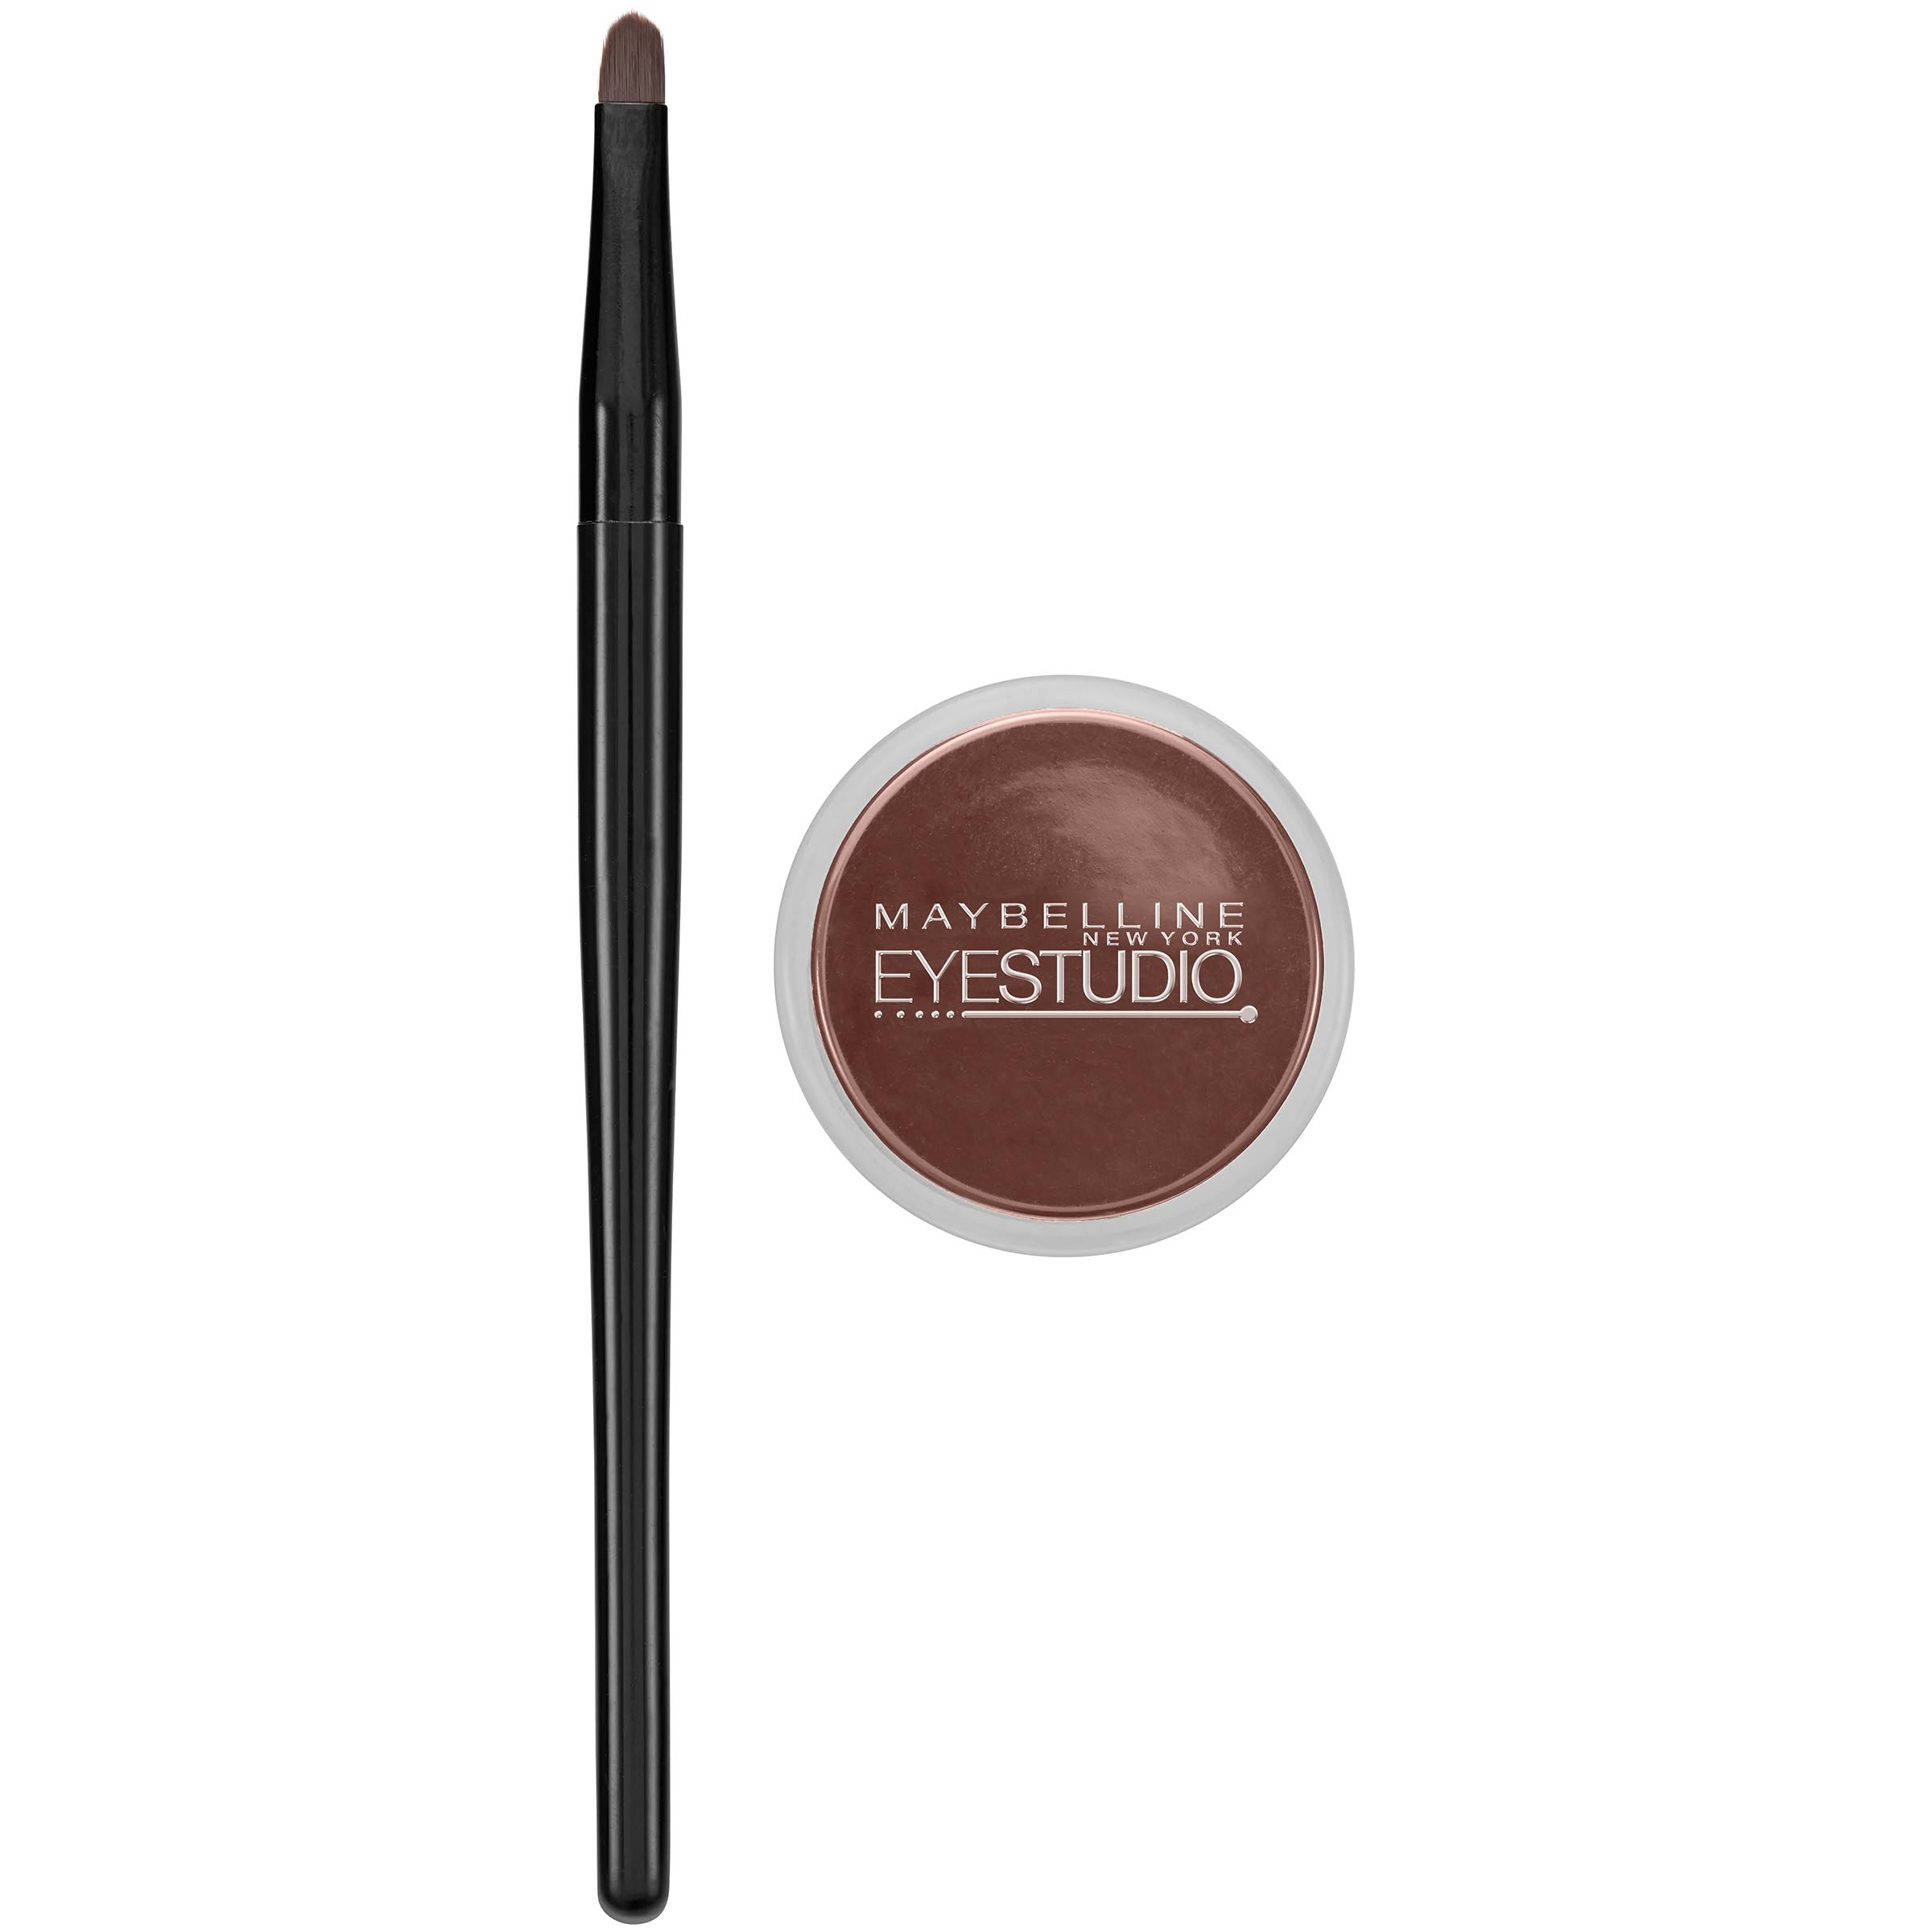 Maybelline New York Eye Studio Lasting Drama Gel Eyeliner - 952 Brown